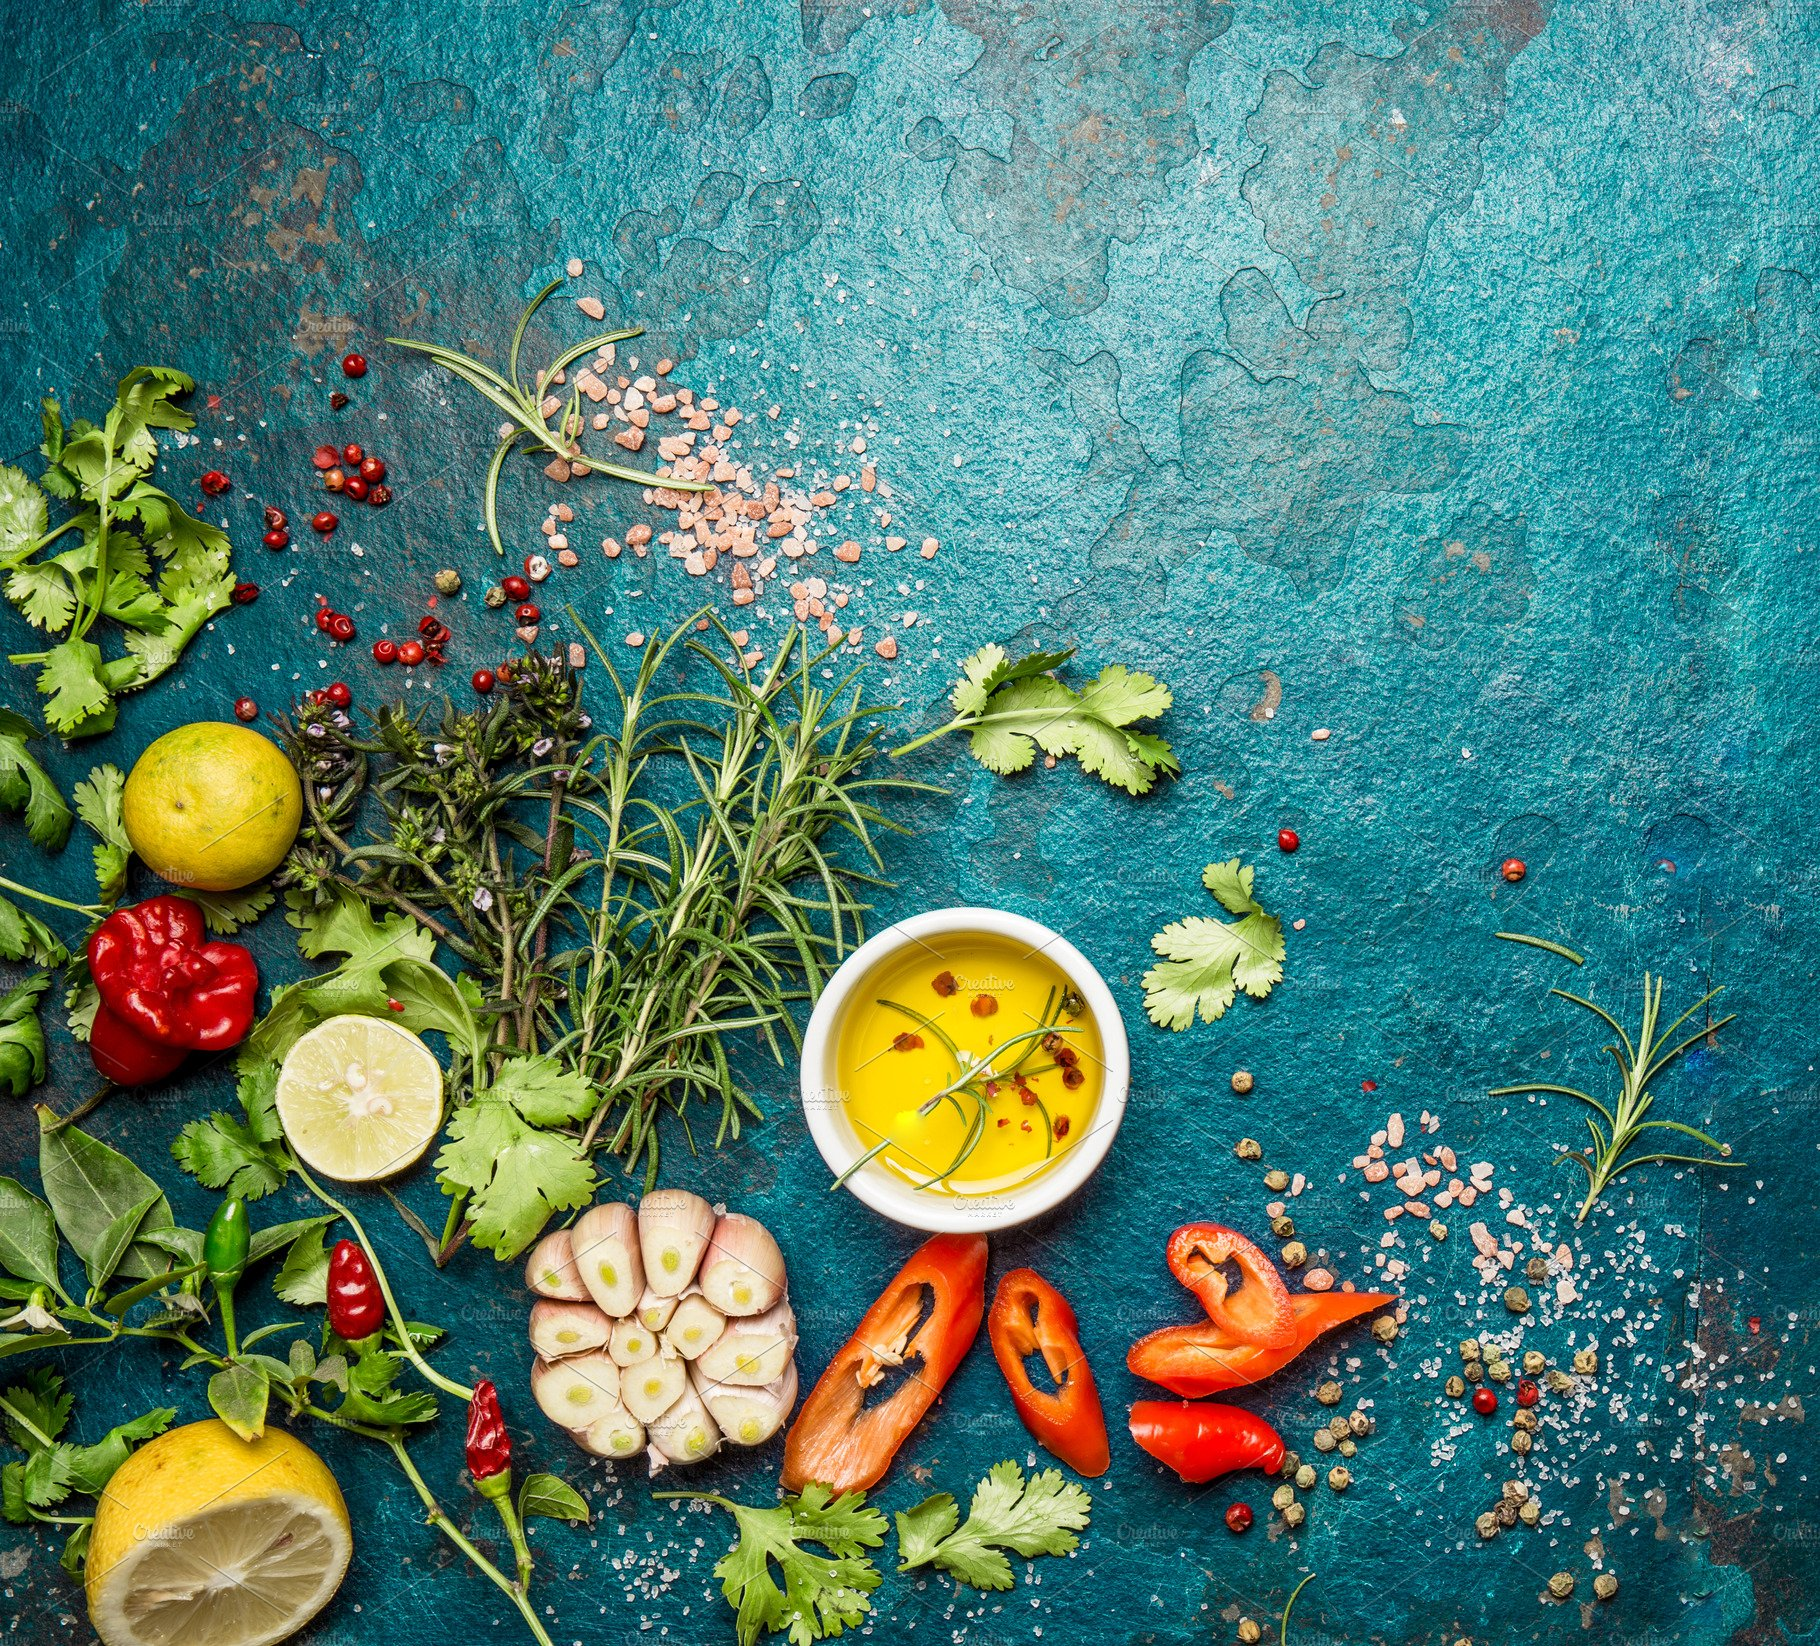 Fresh herbs and spices on blue ~ Food Images ~ Creative Market